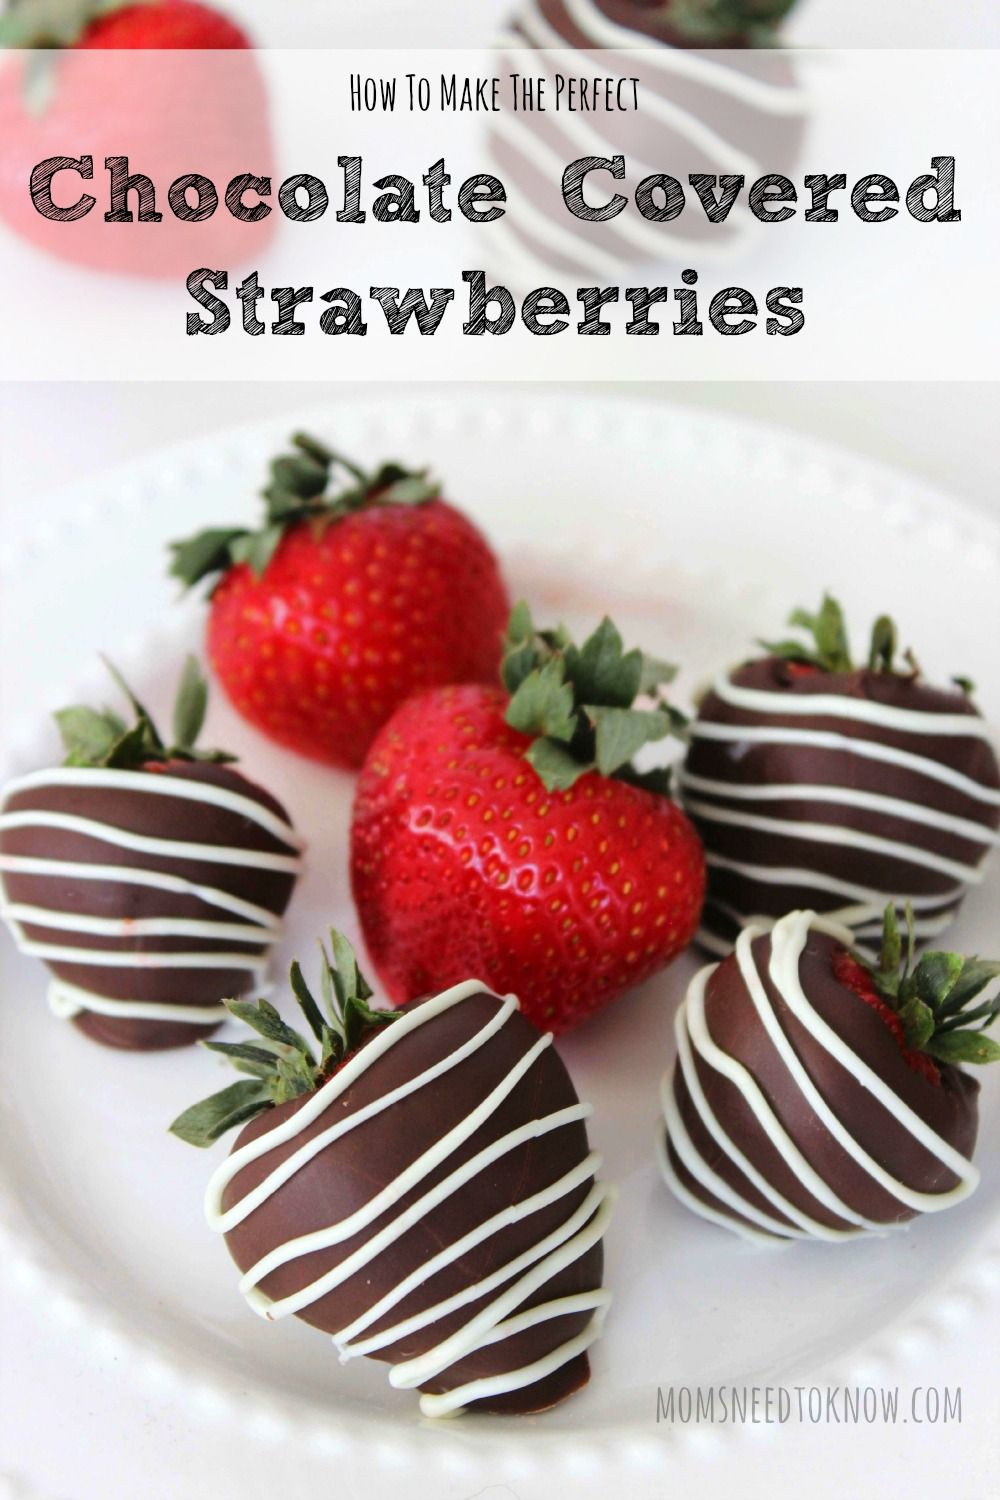 How To Make Chocolate Covered Strawberries Using Microwave